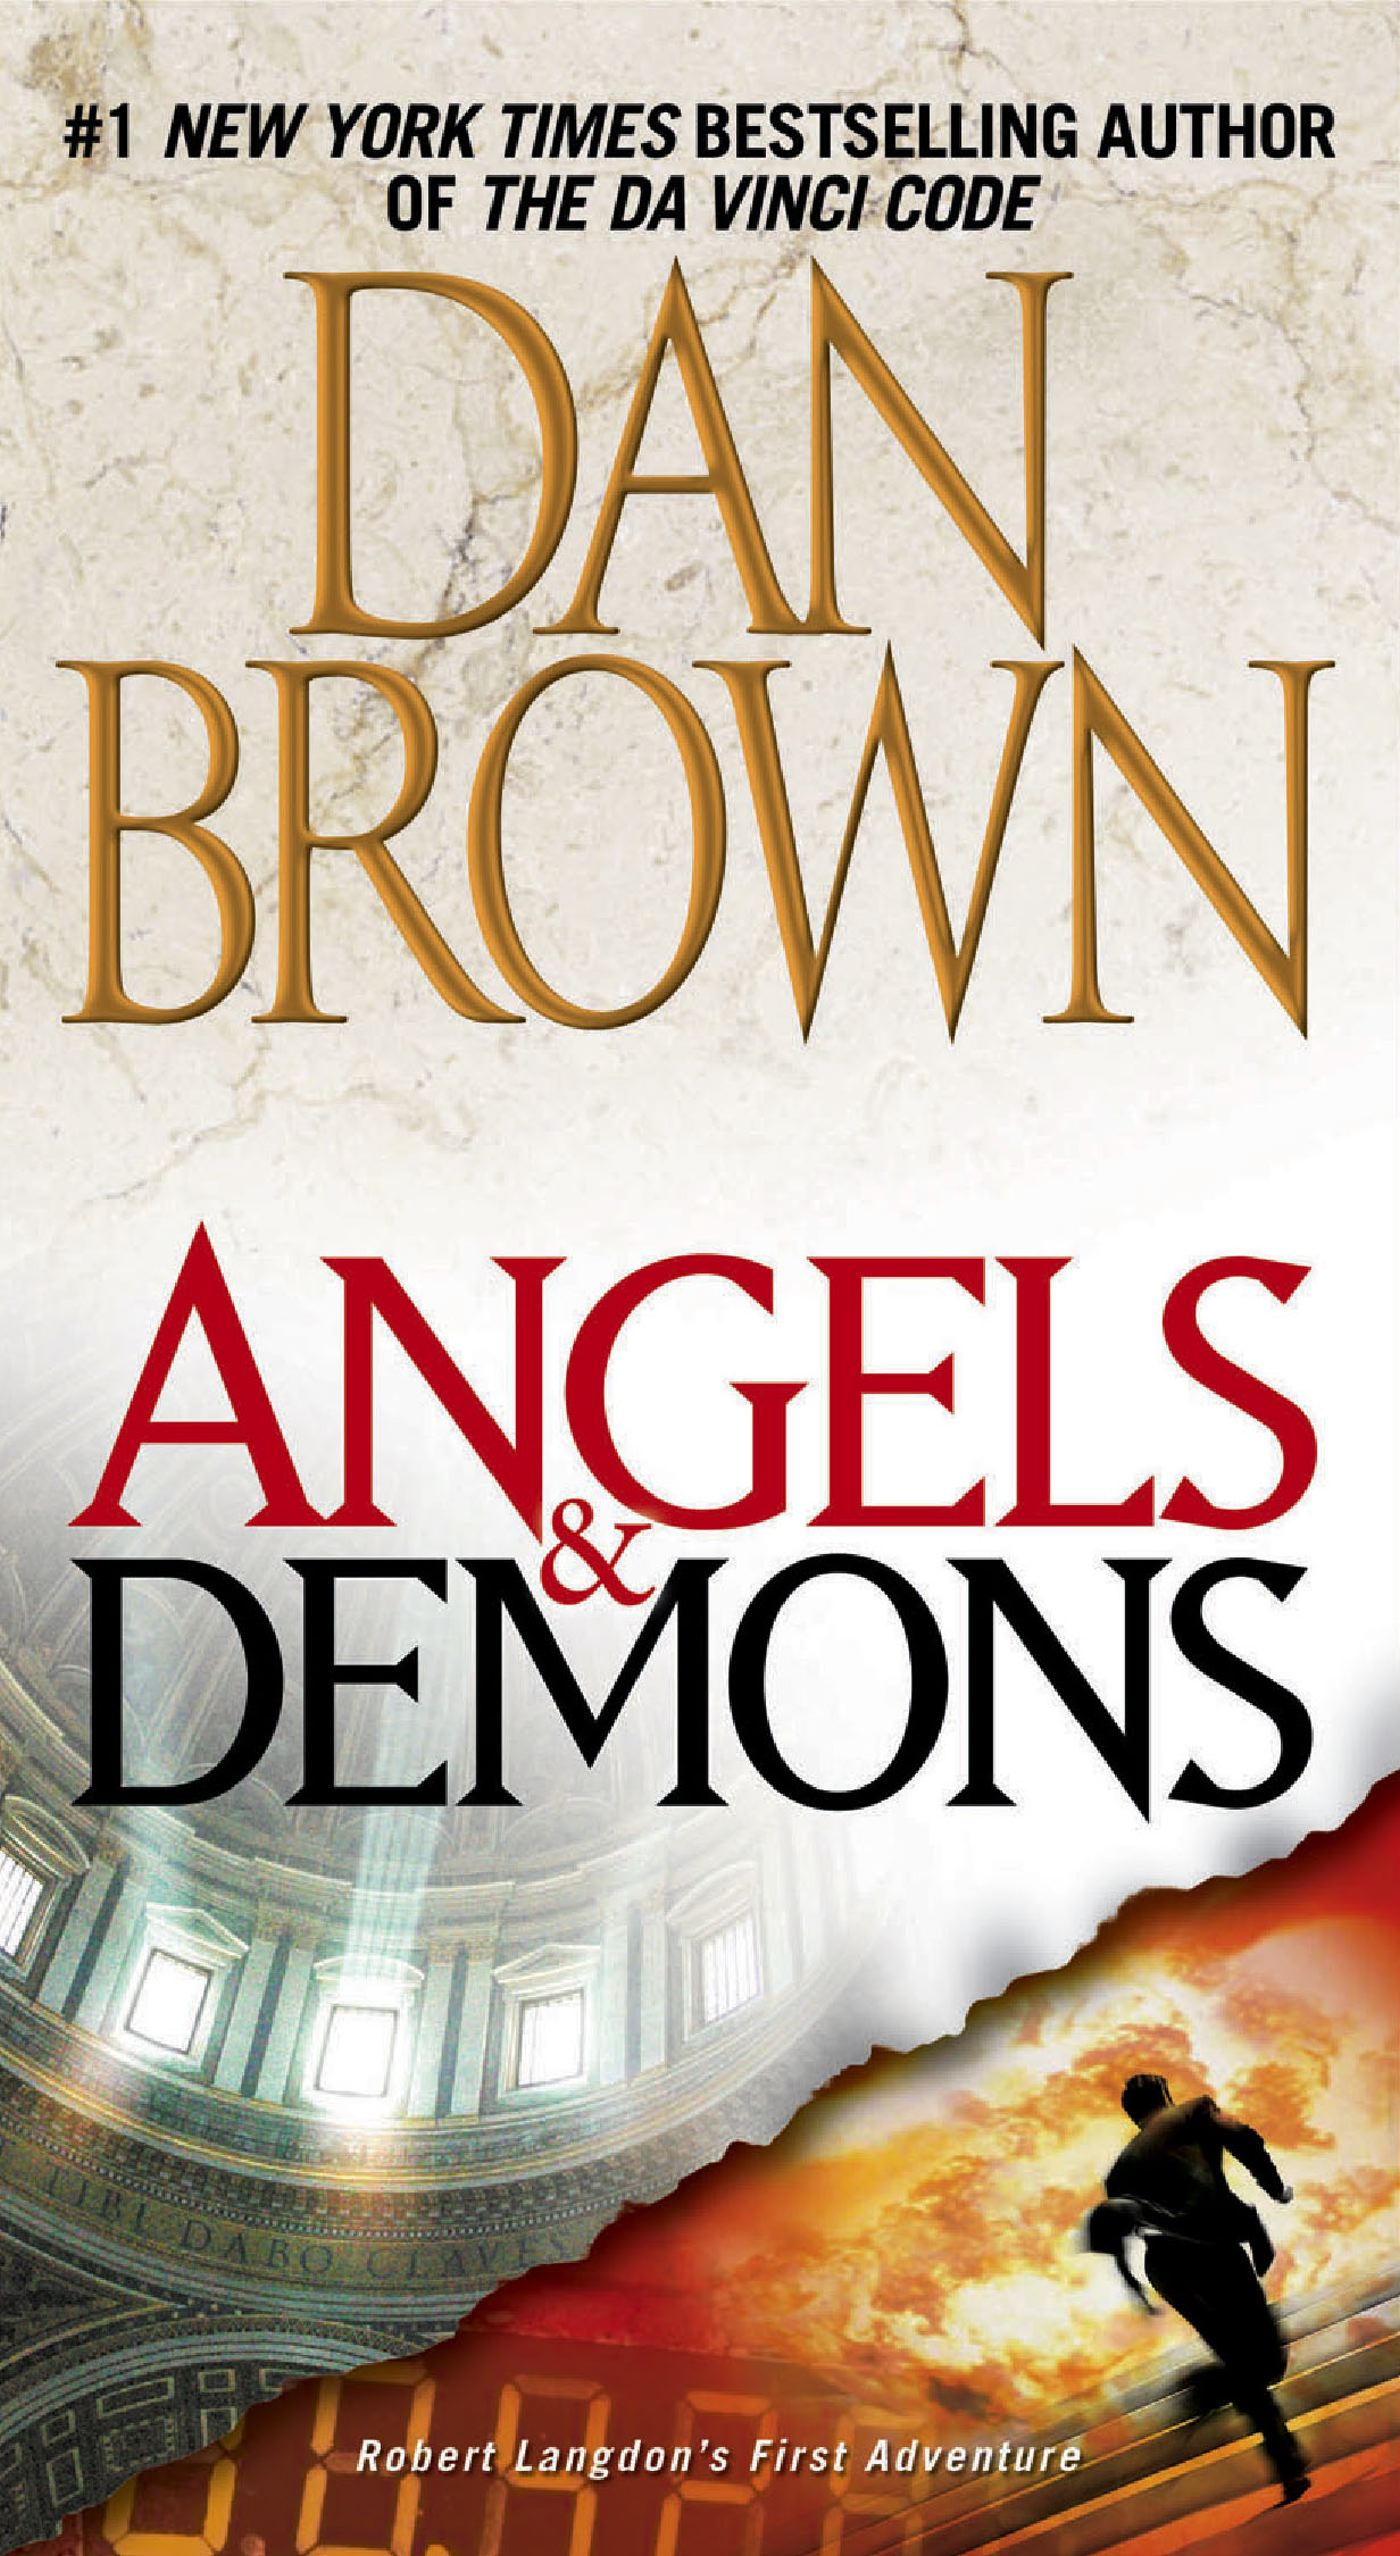 Angels demons 9781416524793 hr